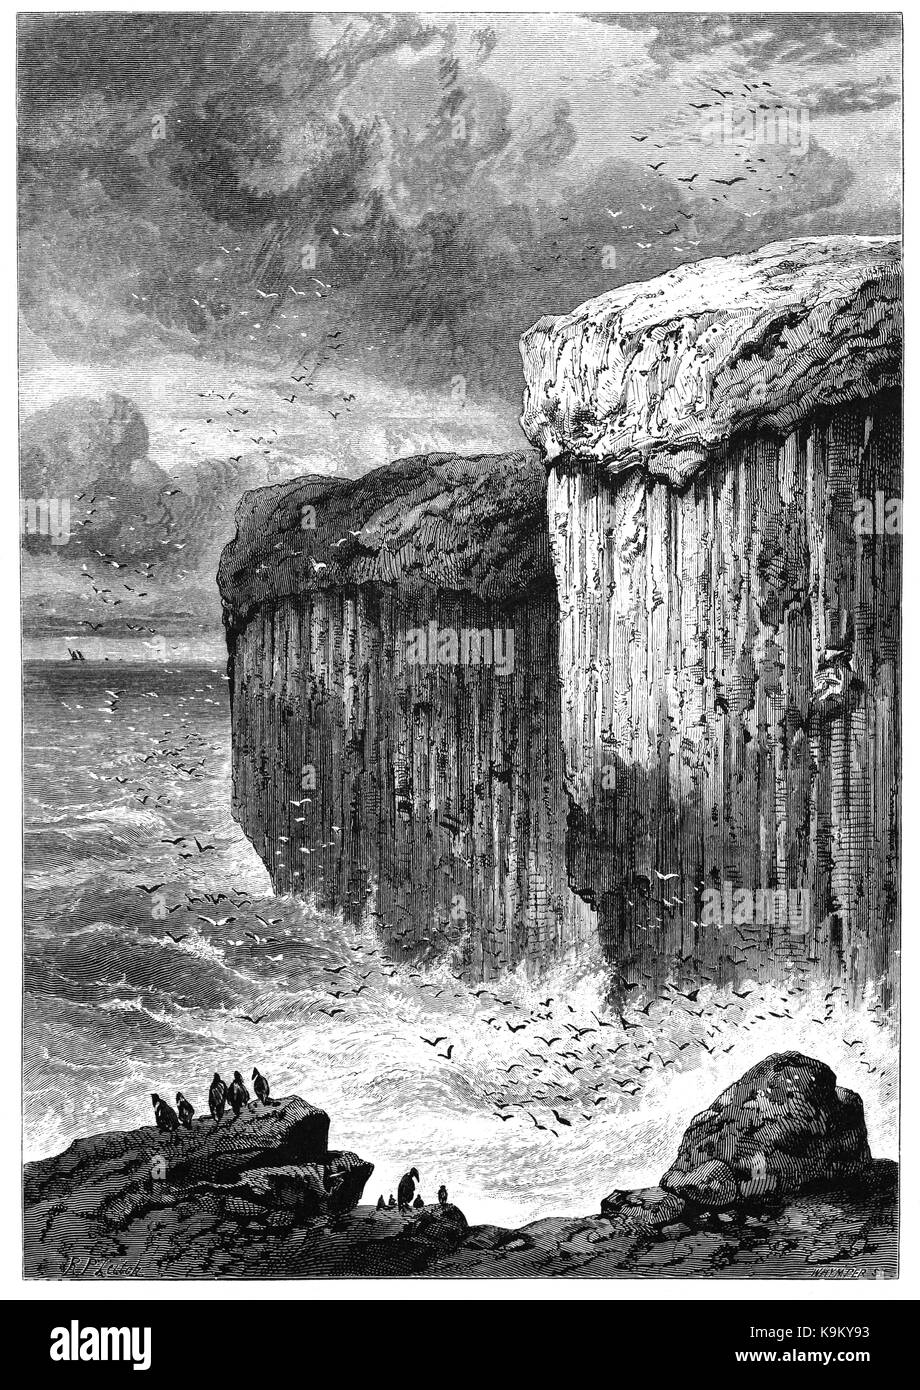 1870: Fingal's Cave is a sea cave on the uninhabited island of Staffa, in the Inner Hebrides of Scotland, known - Stock Image